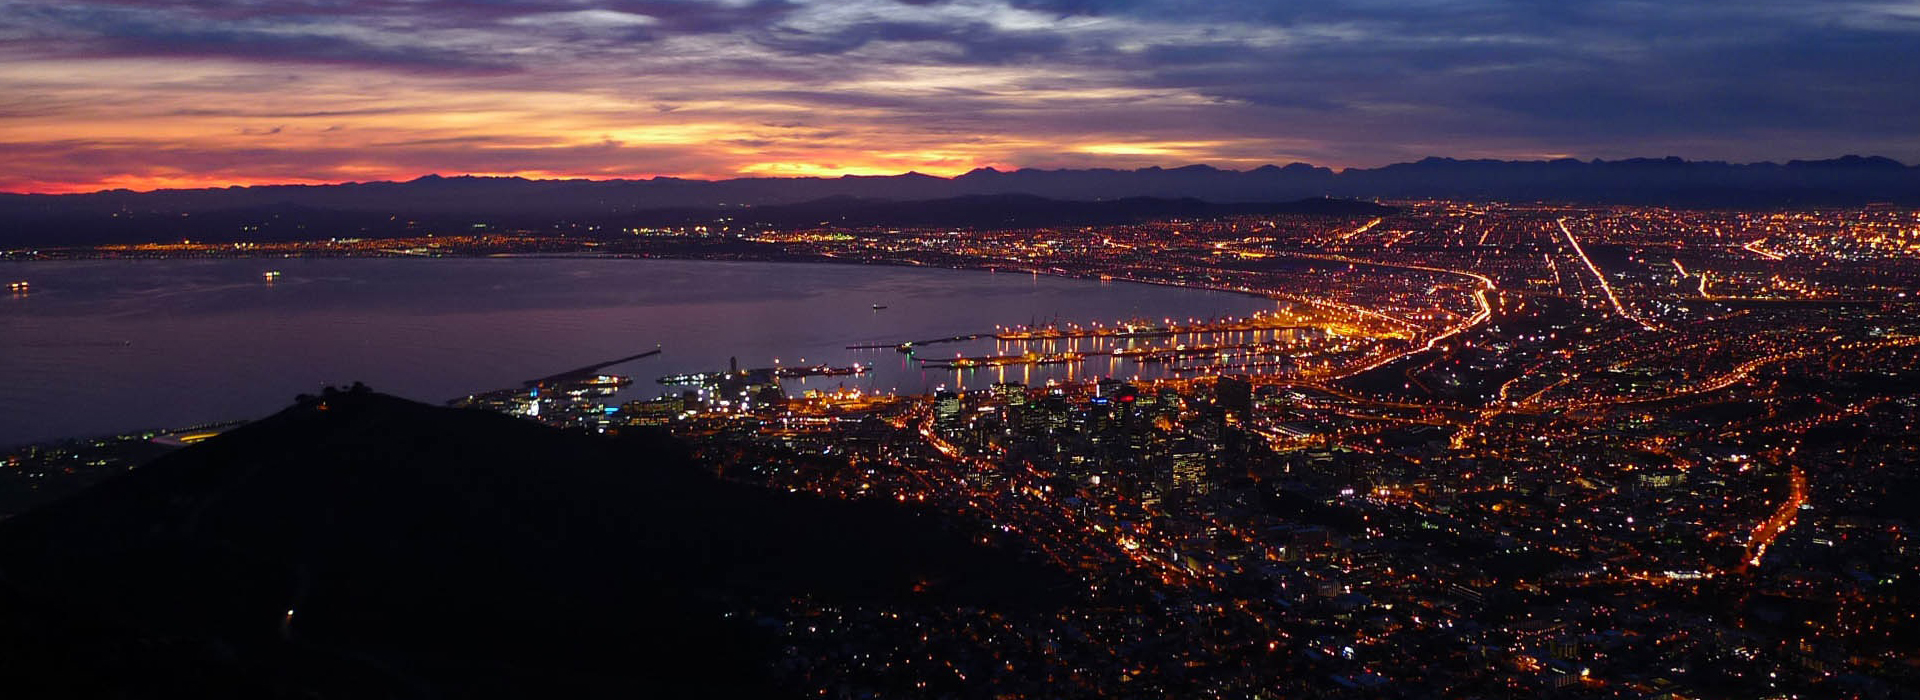 Amazing picturesque view of the Mother City Cape Town at dusk